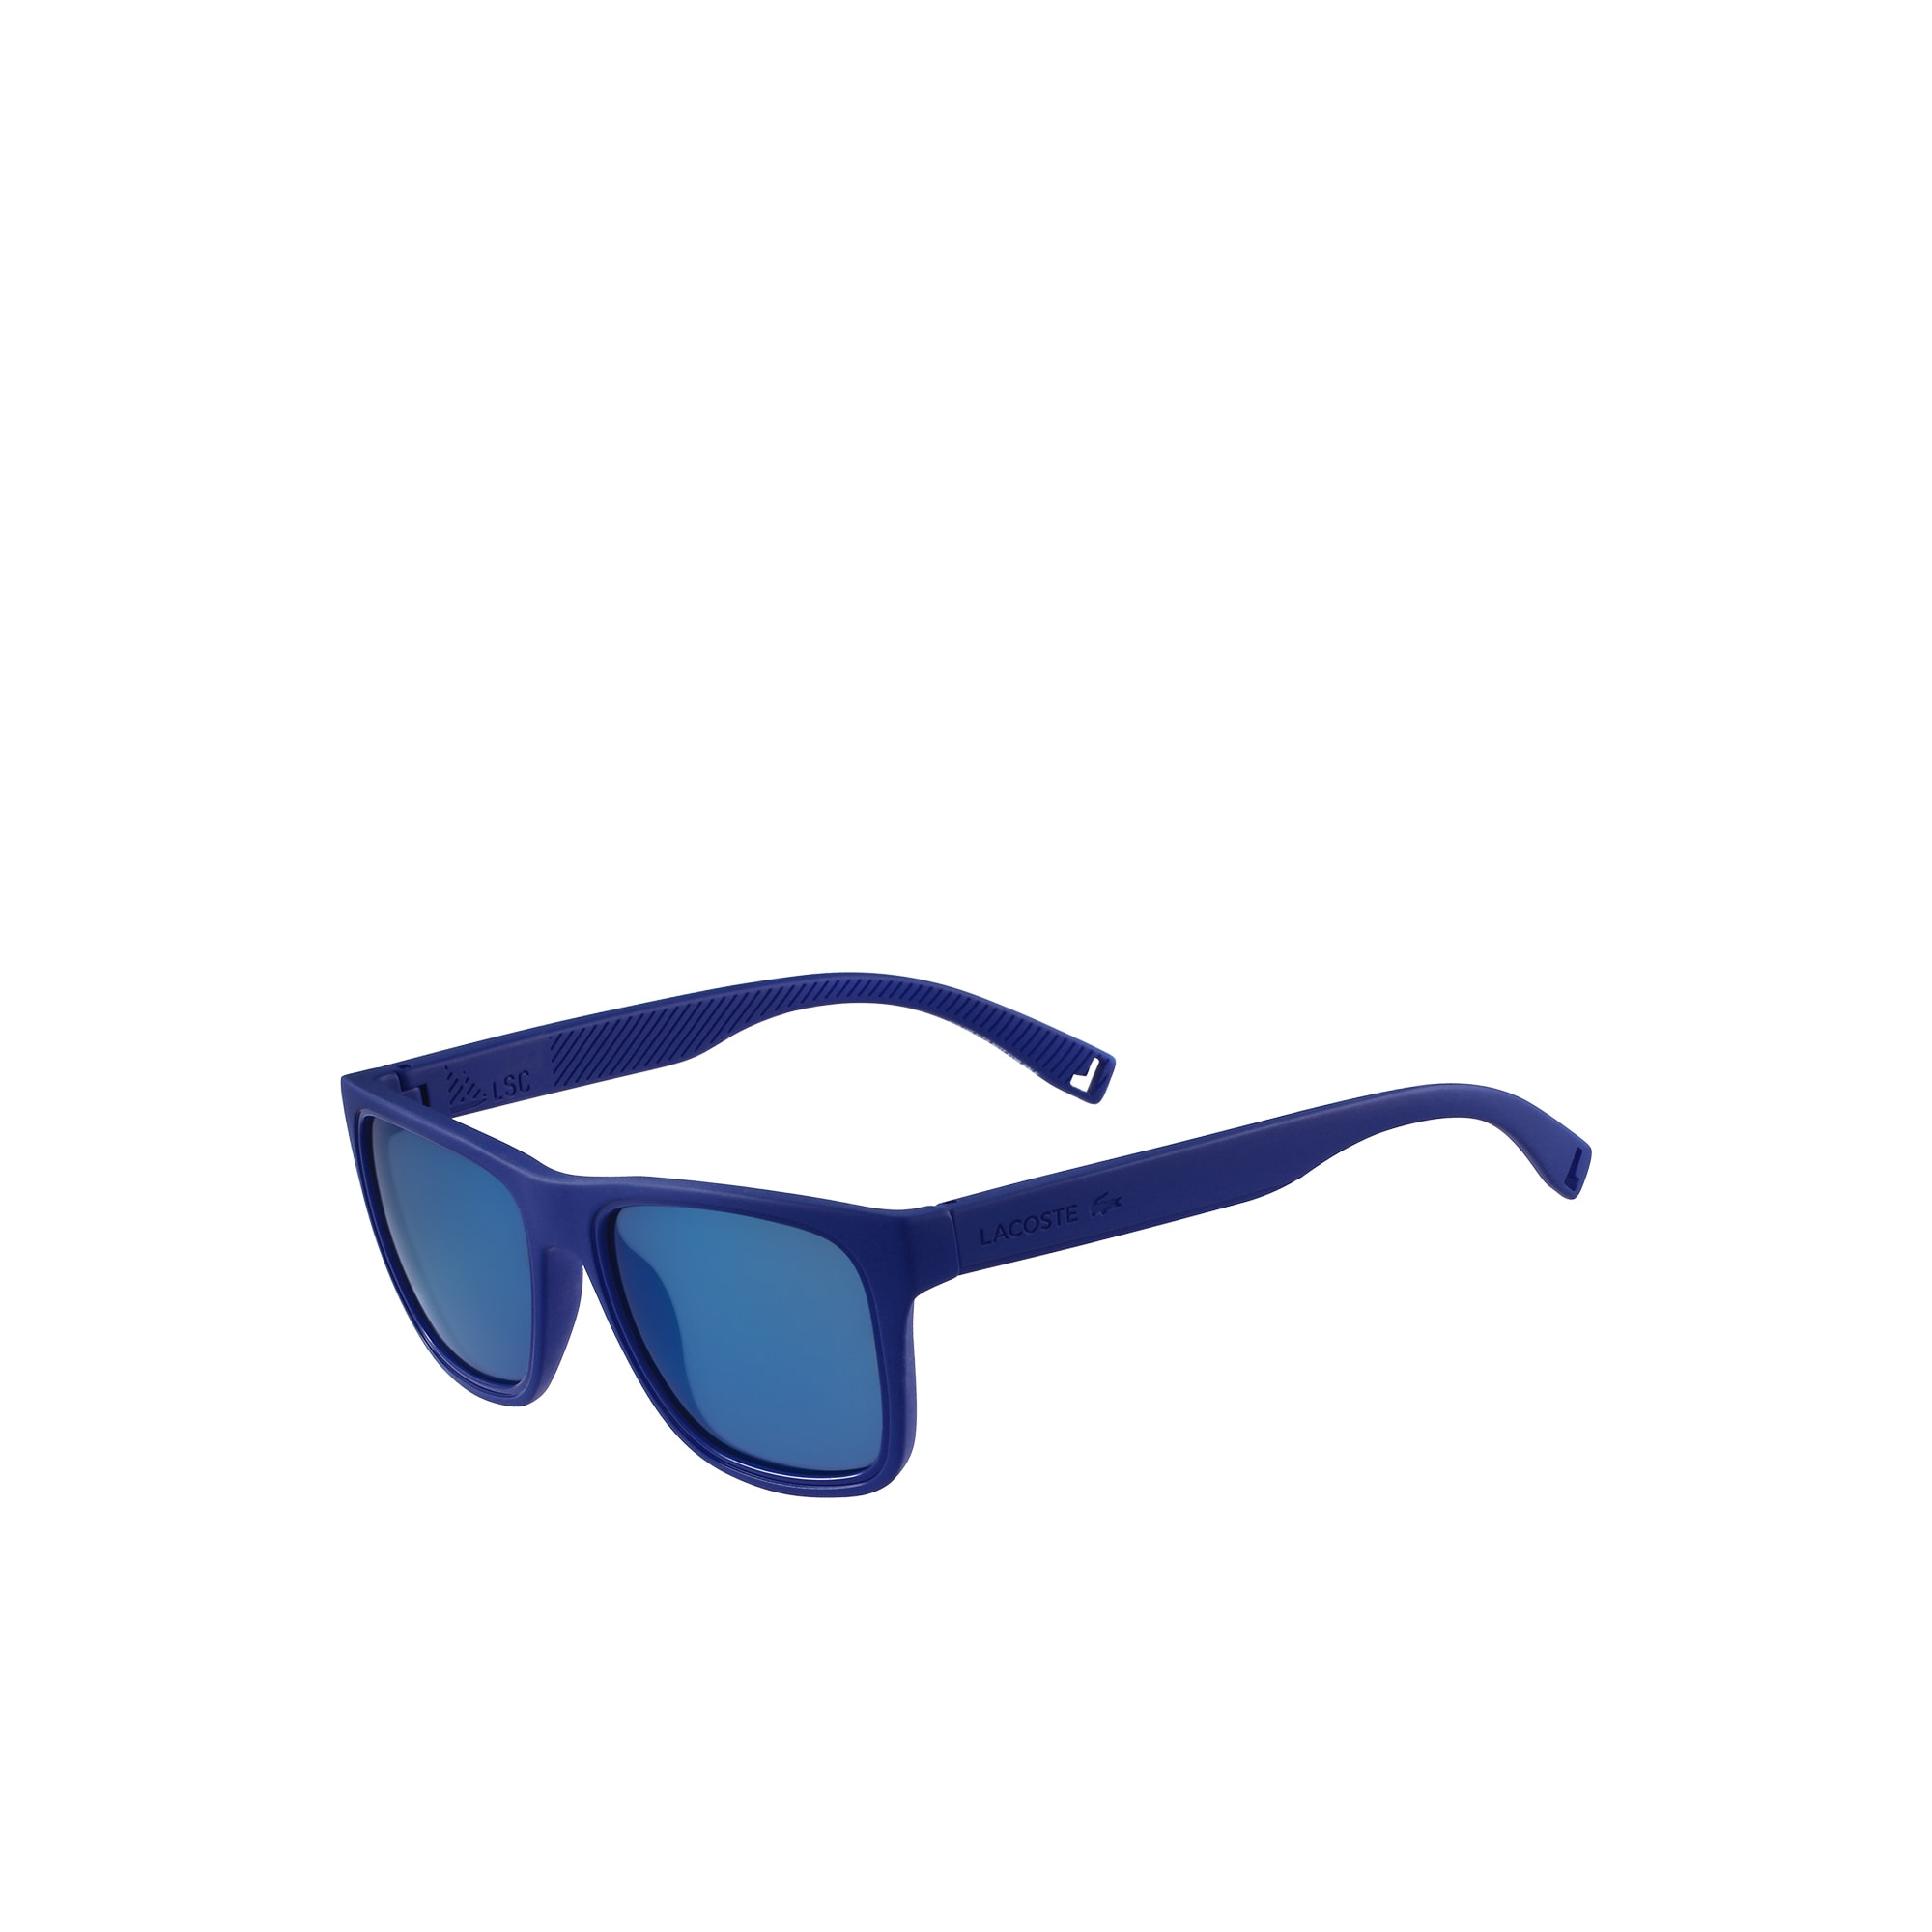 Men's Floatable Color Block Sunglasses